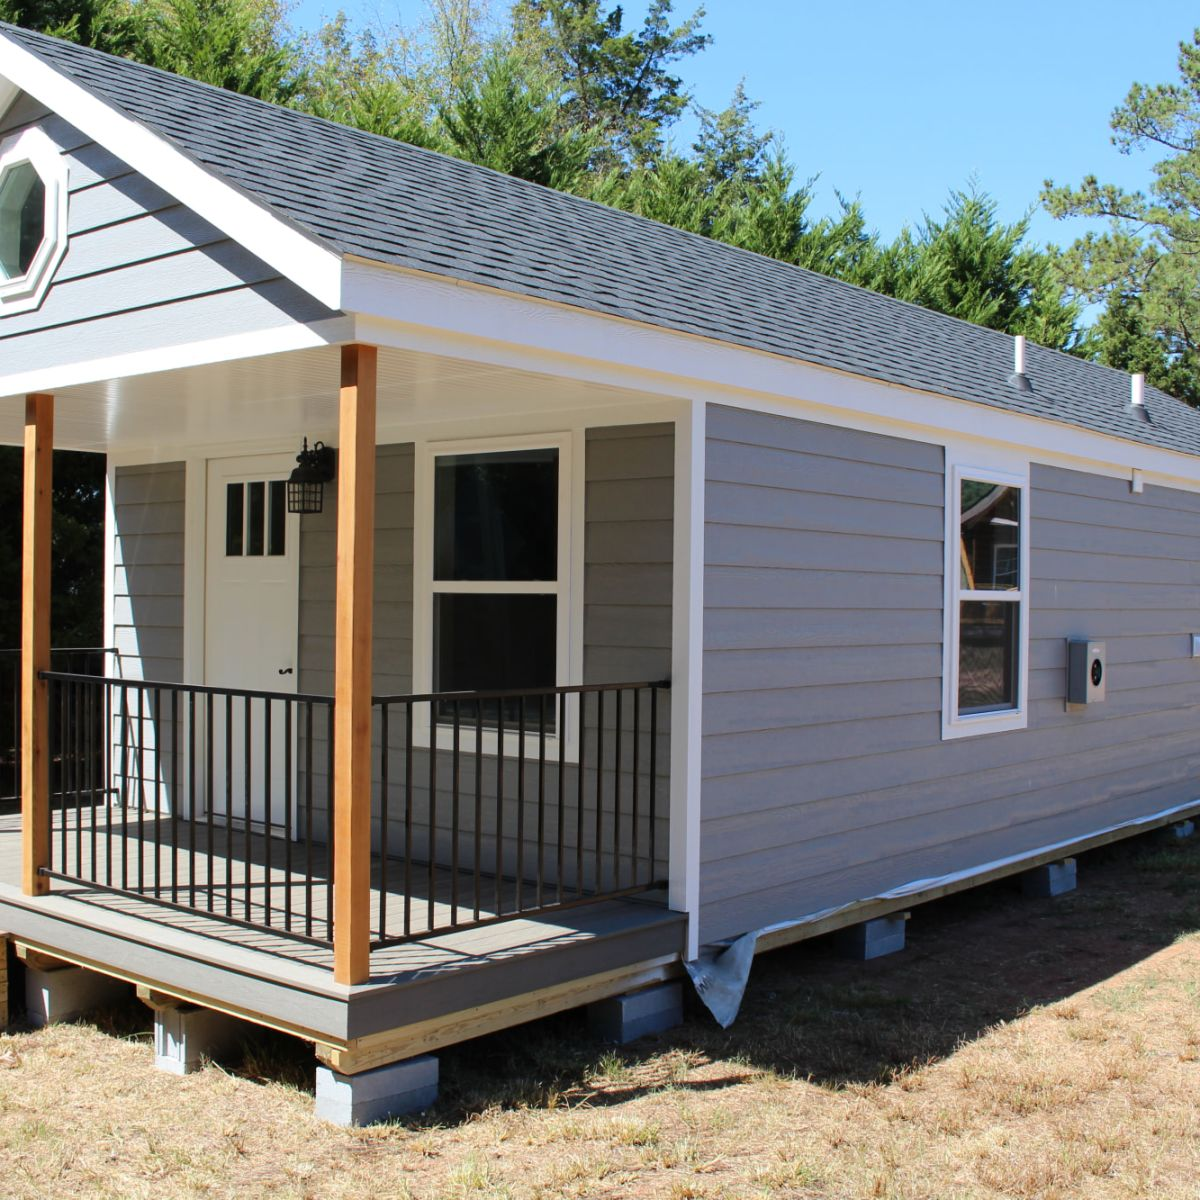 14x40 Modular Tiny Home Cabin For Sale In Due West South Carolina Tiny House Listings